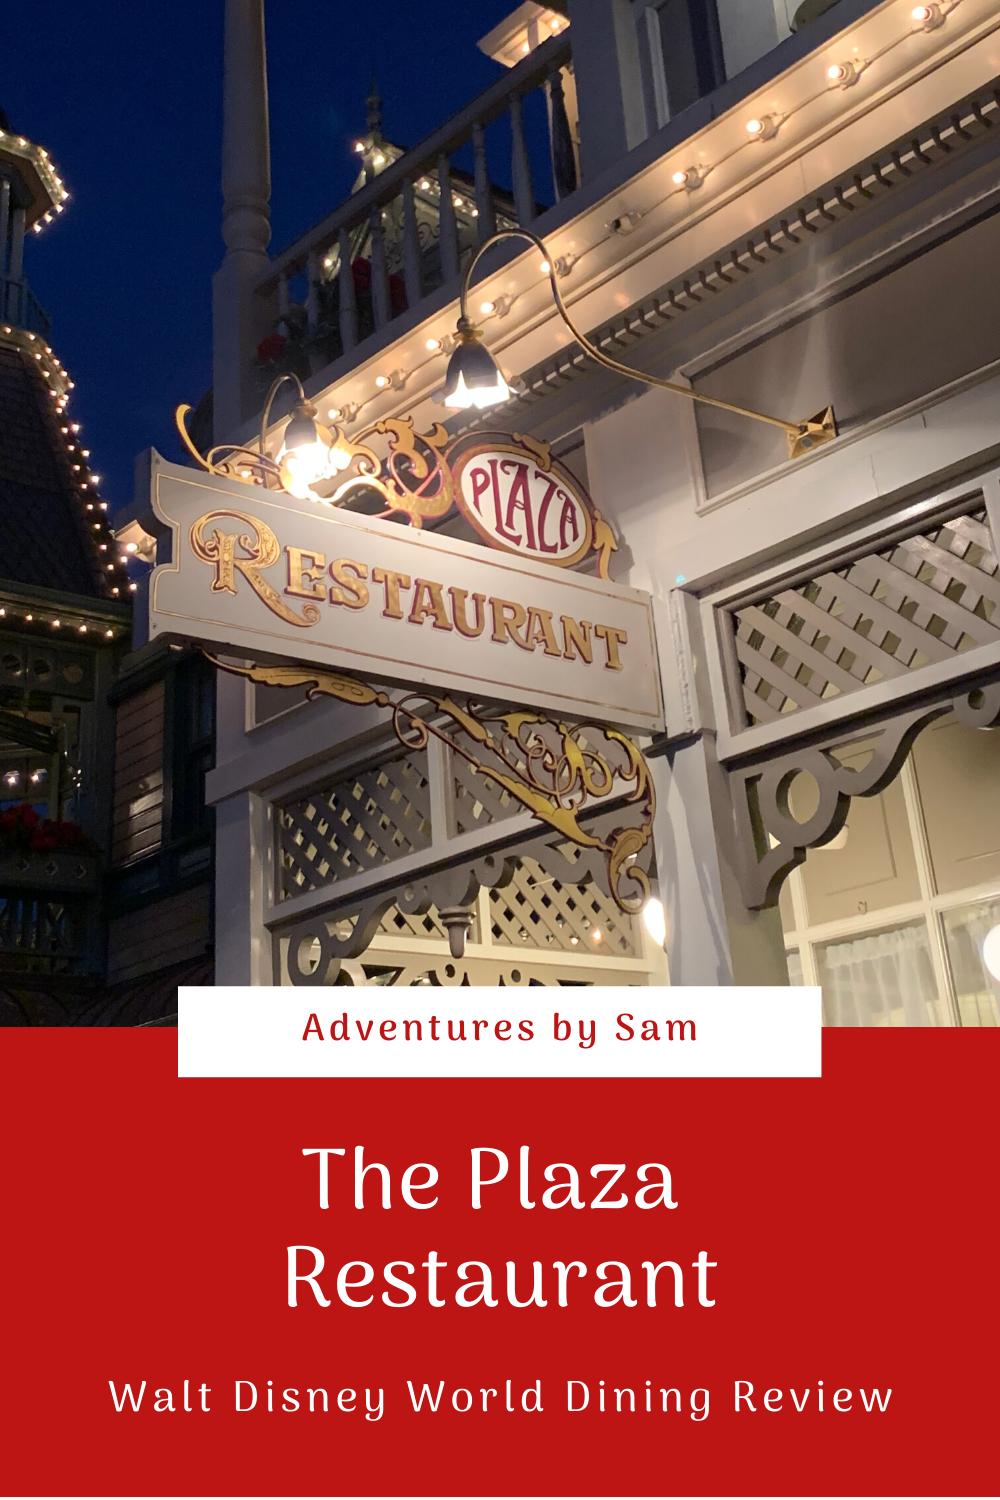 Dining Review: The Plaza Restaurant (Thumbnail)